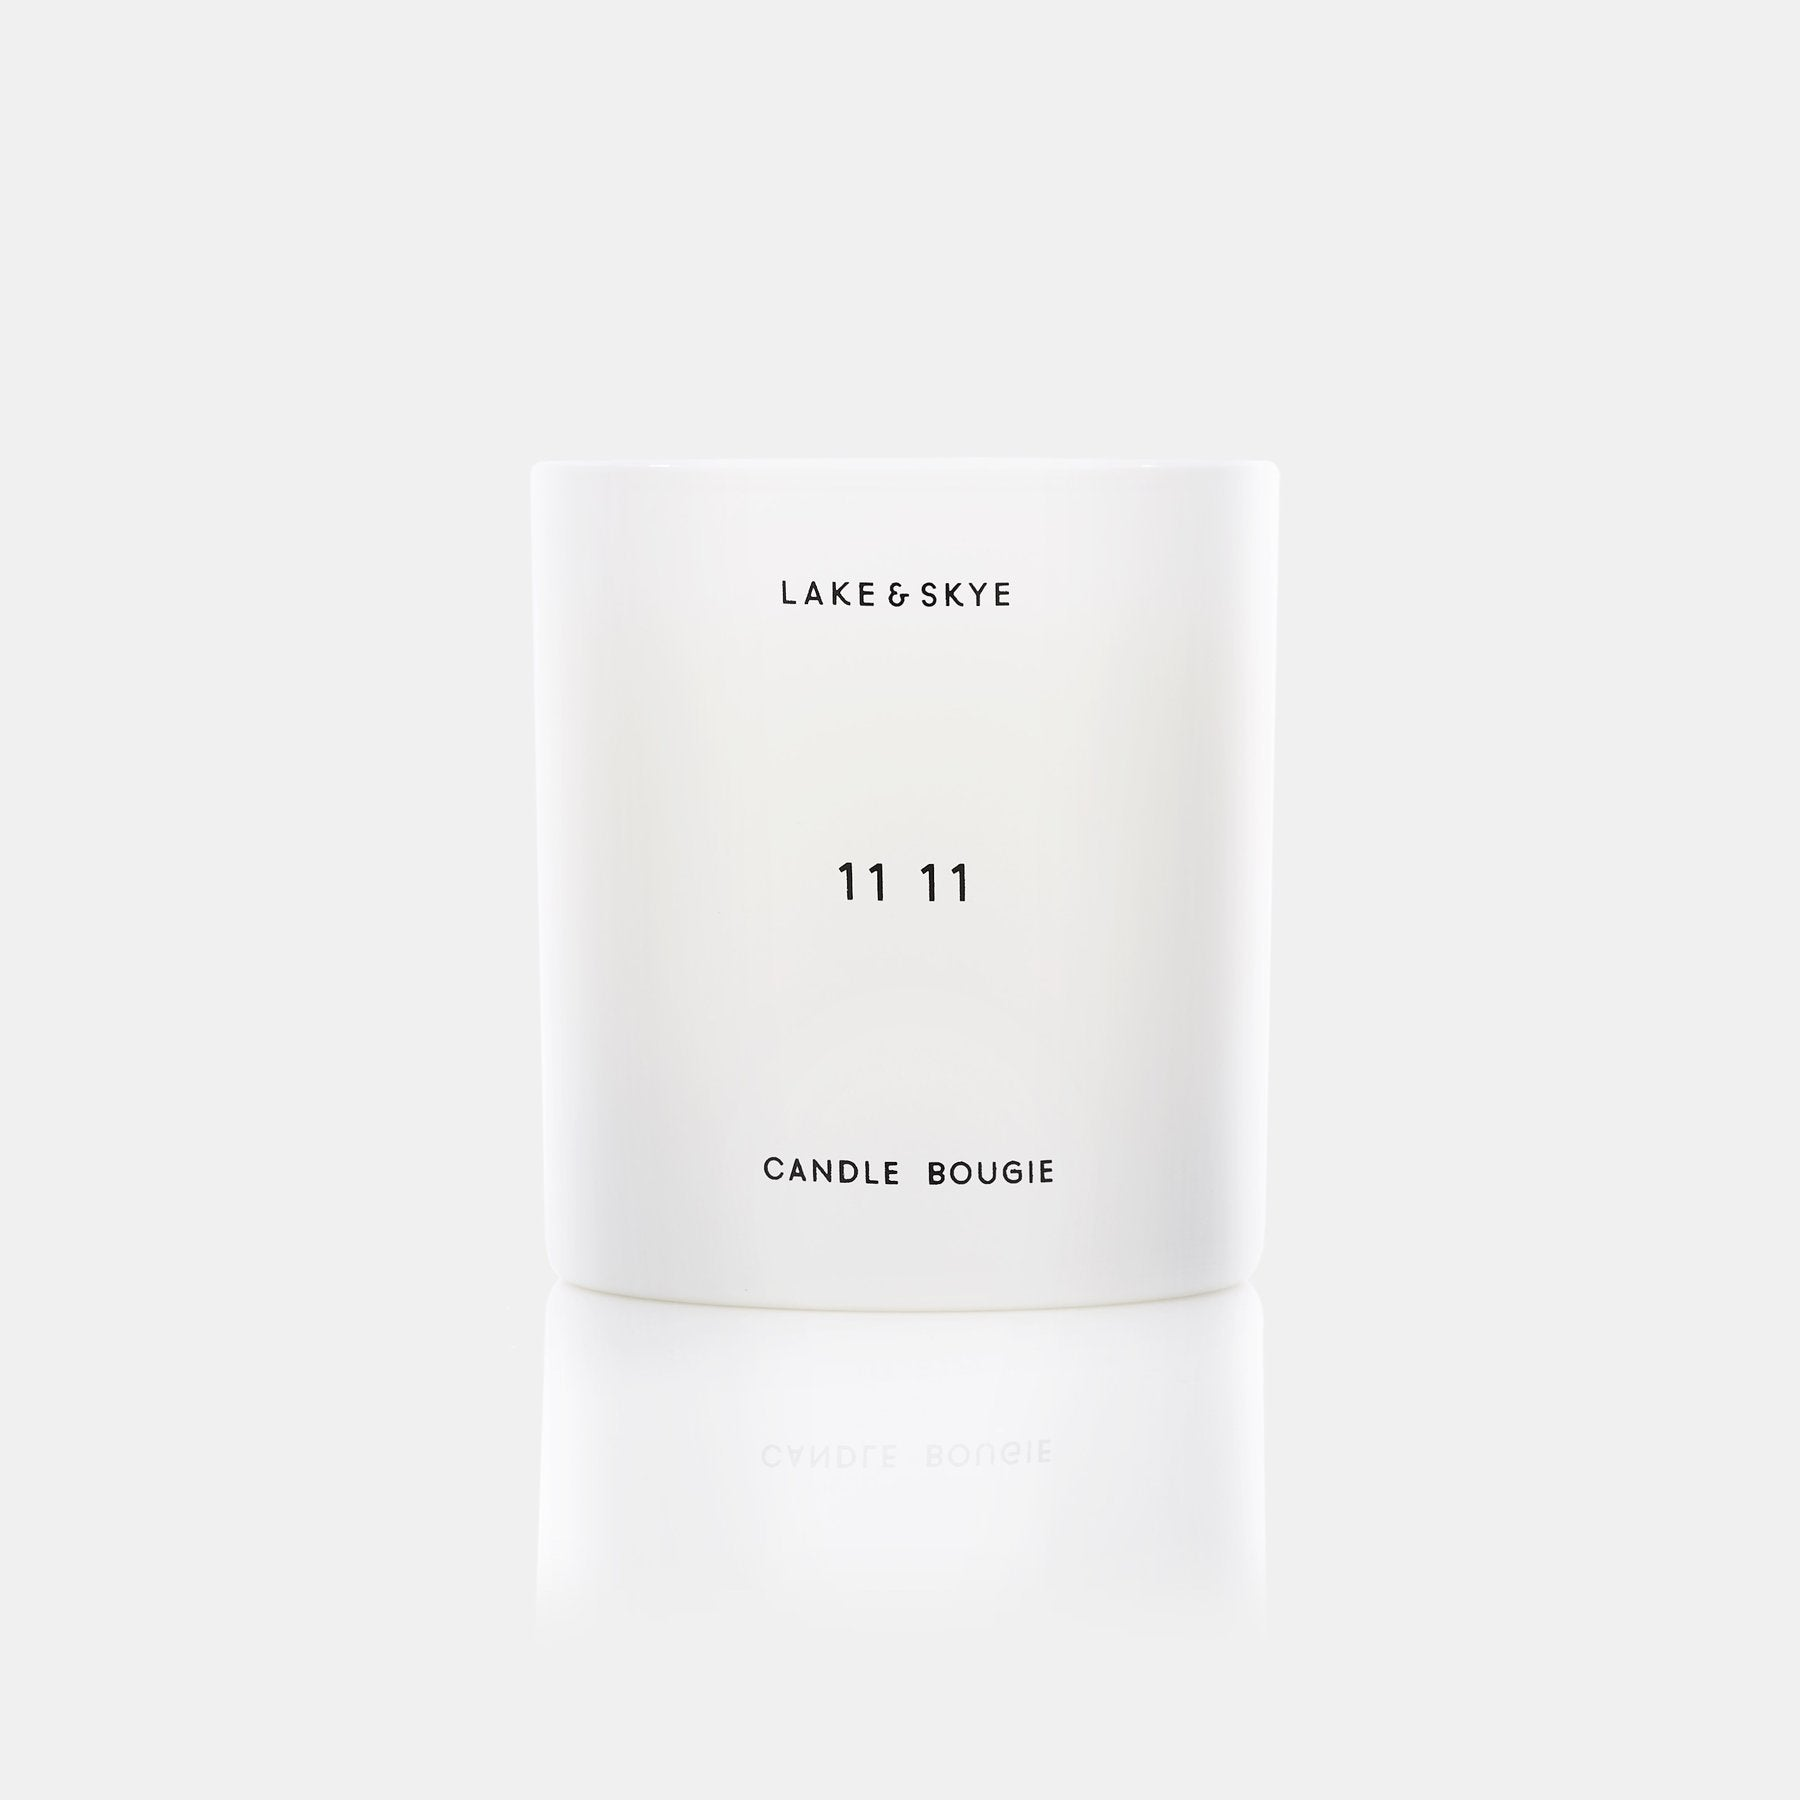 Lake & Skye 11/11 Candle